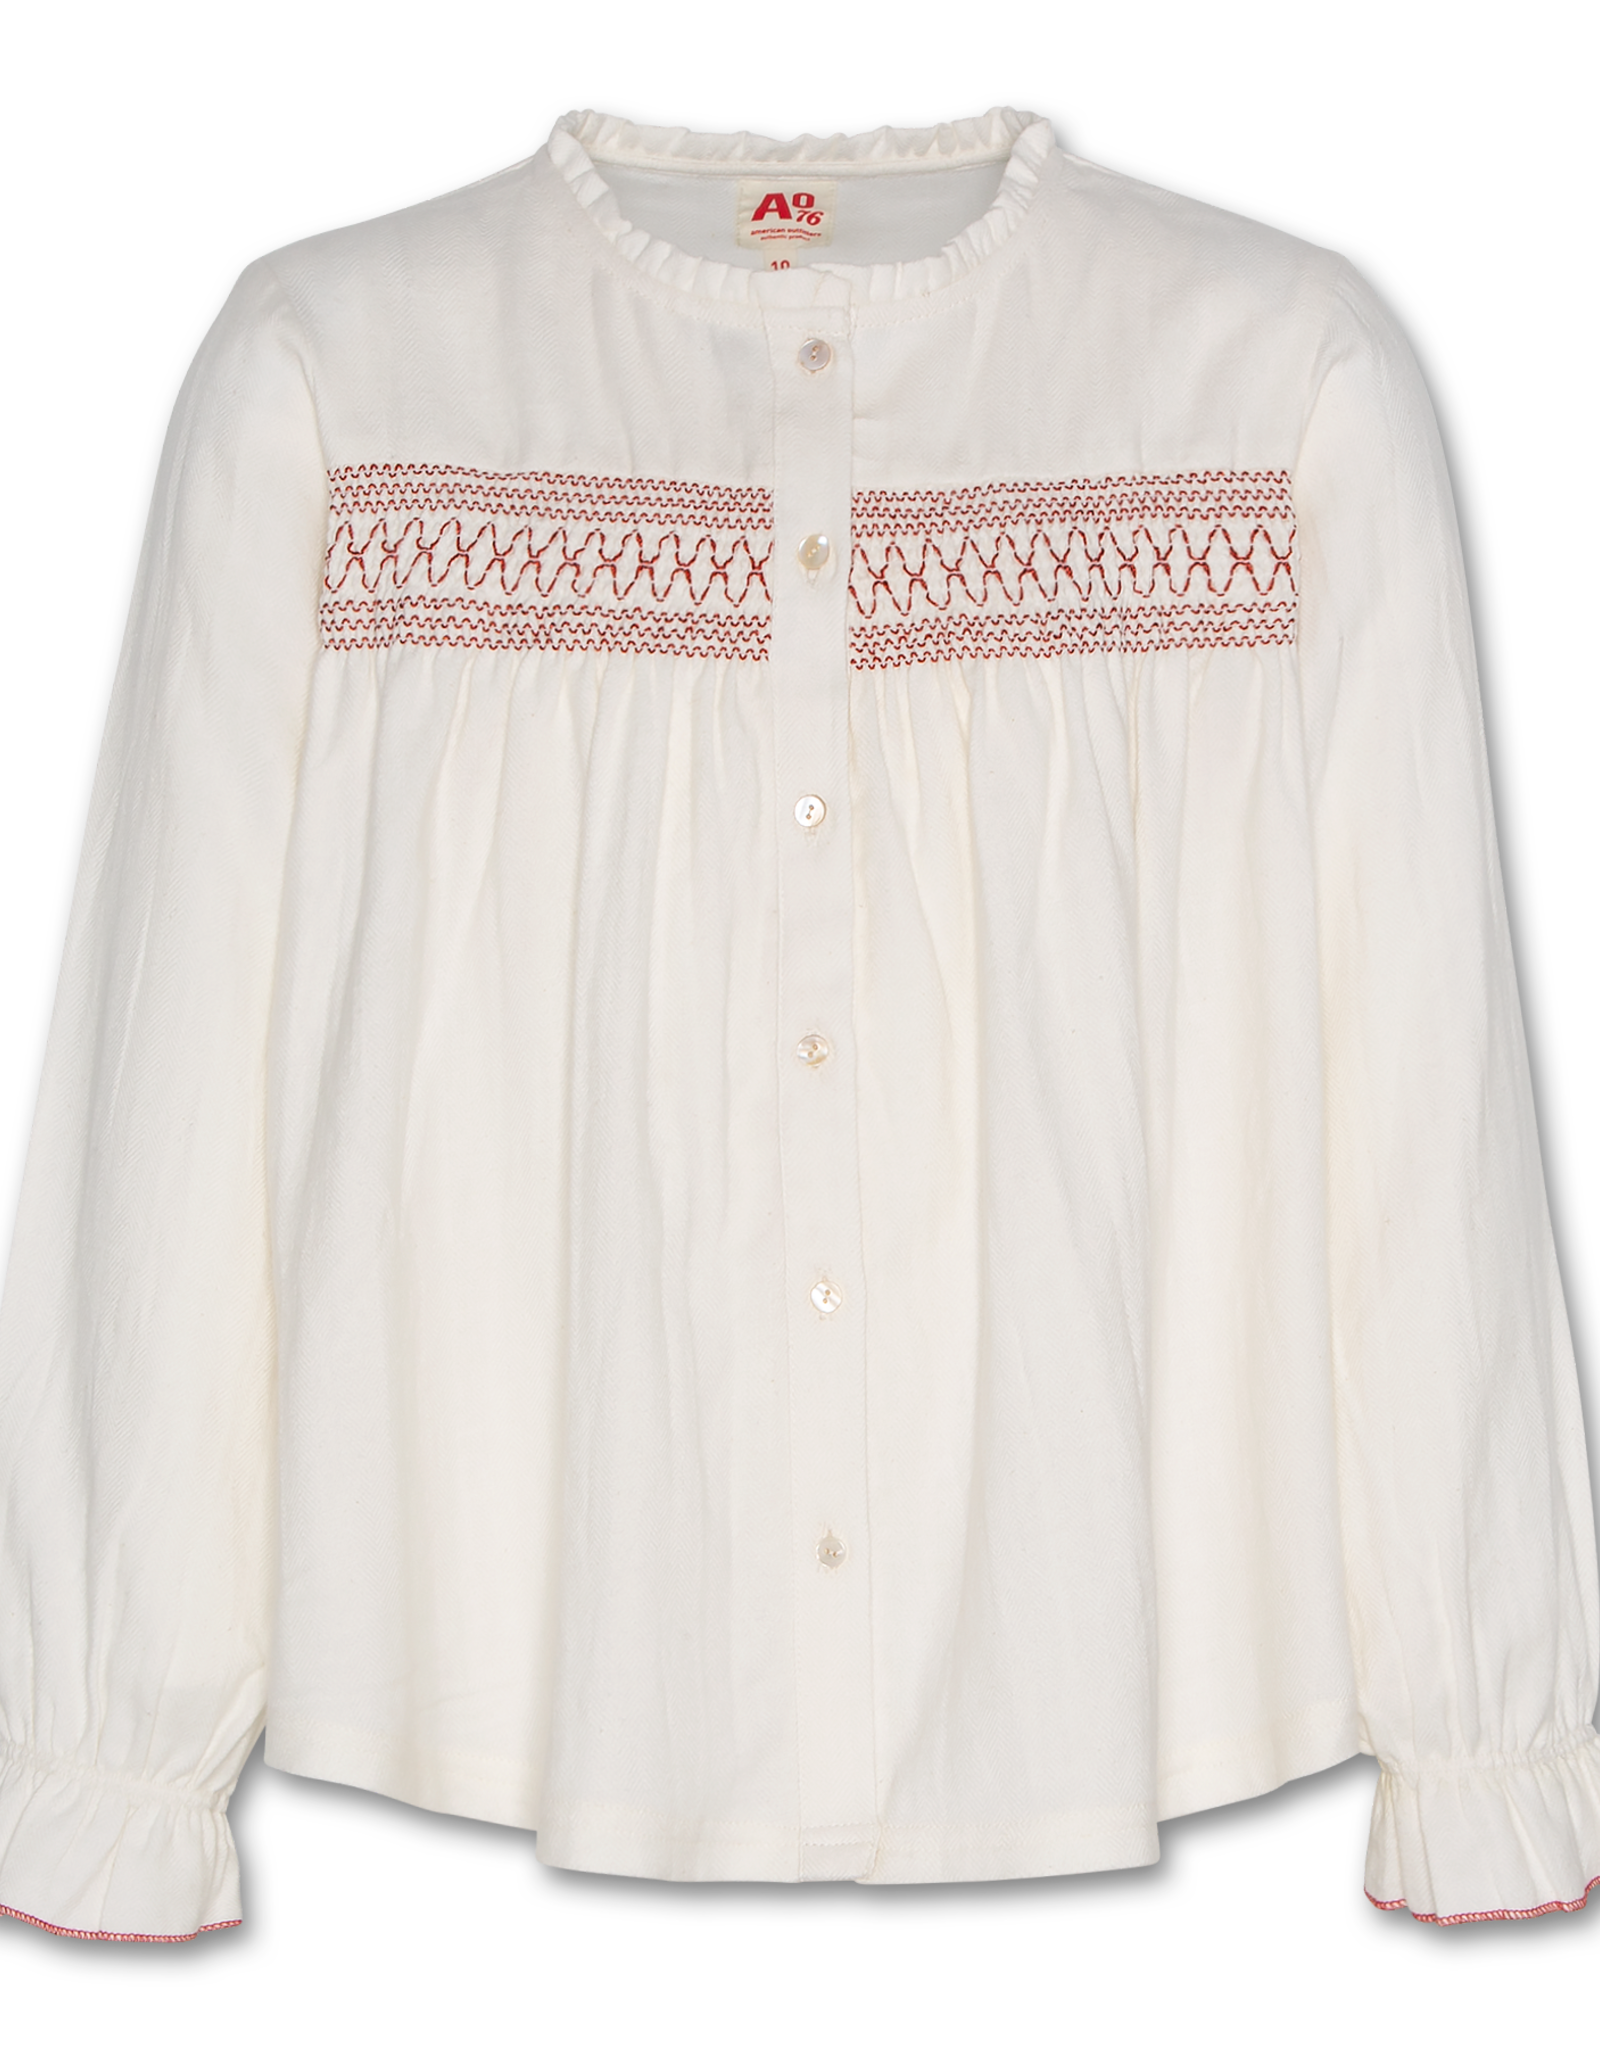 AMERICAN OUTFITTERS AO76 inuit shirt natural